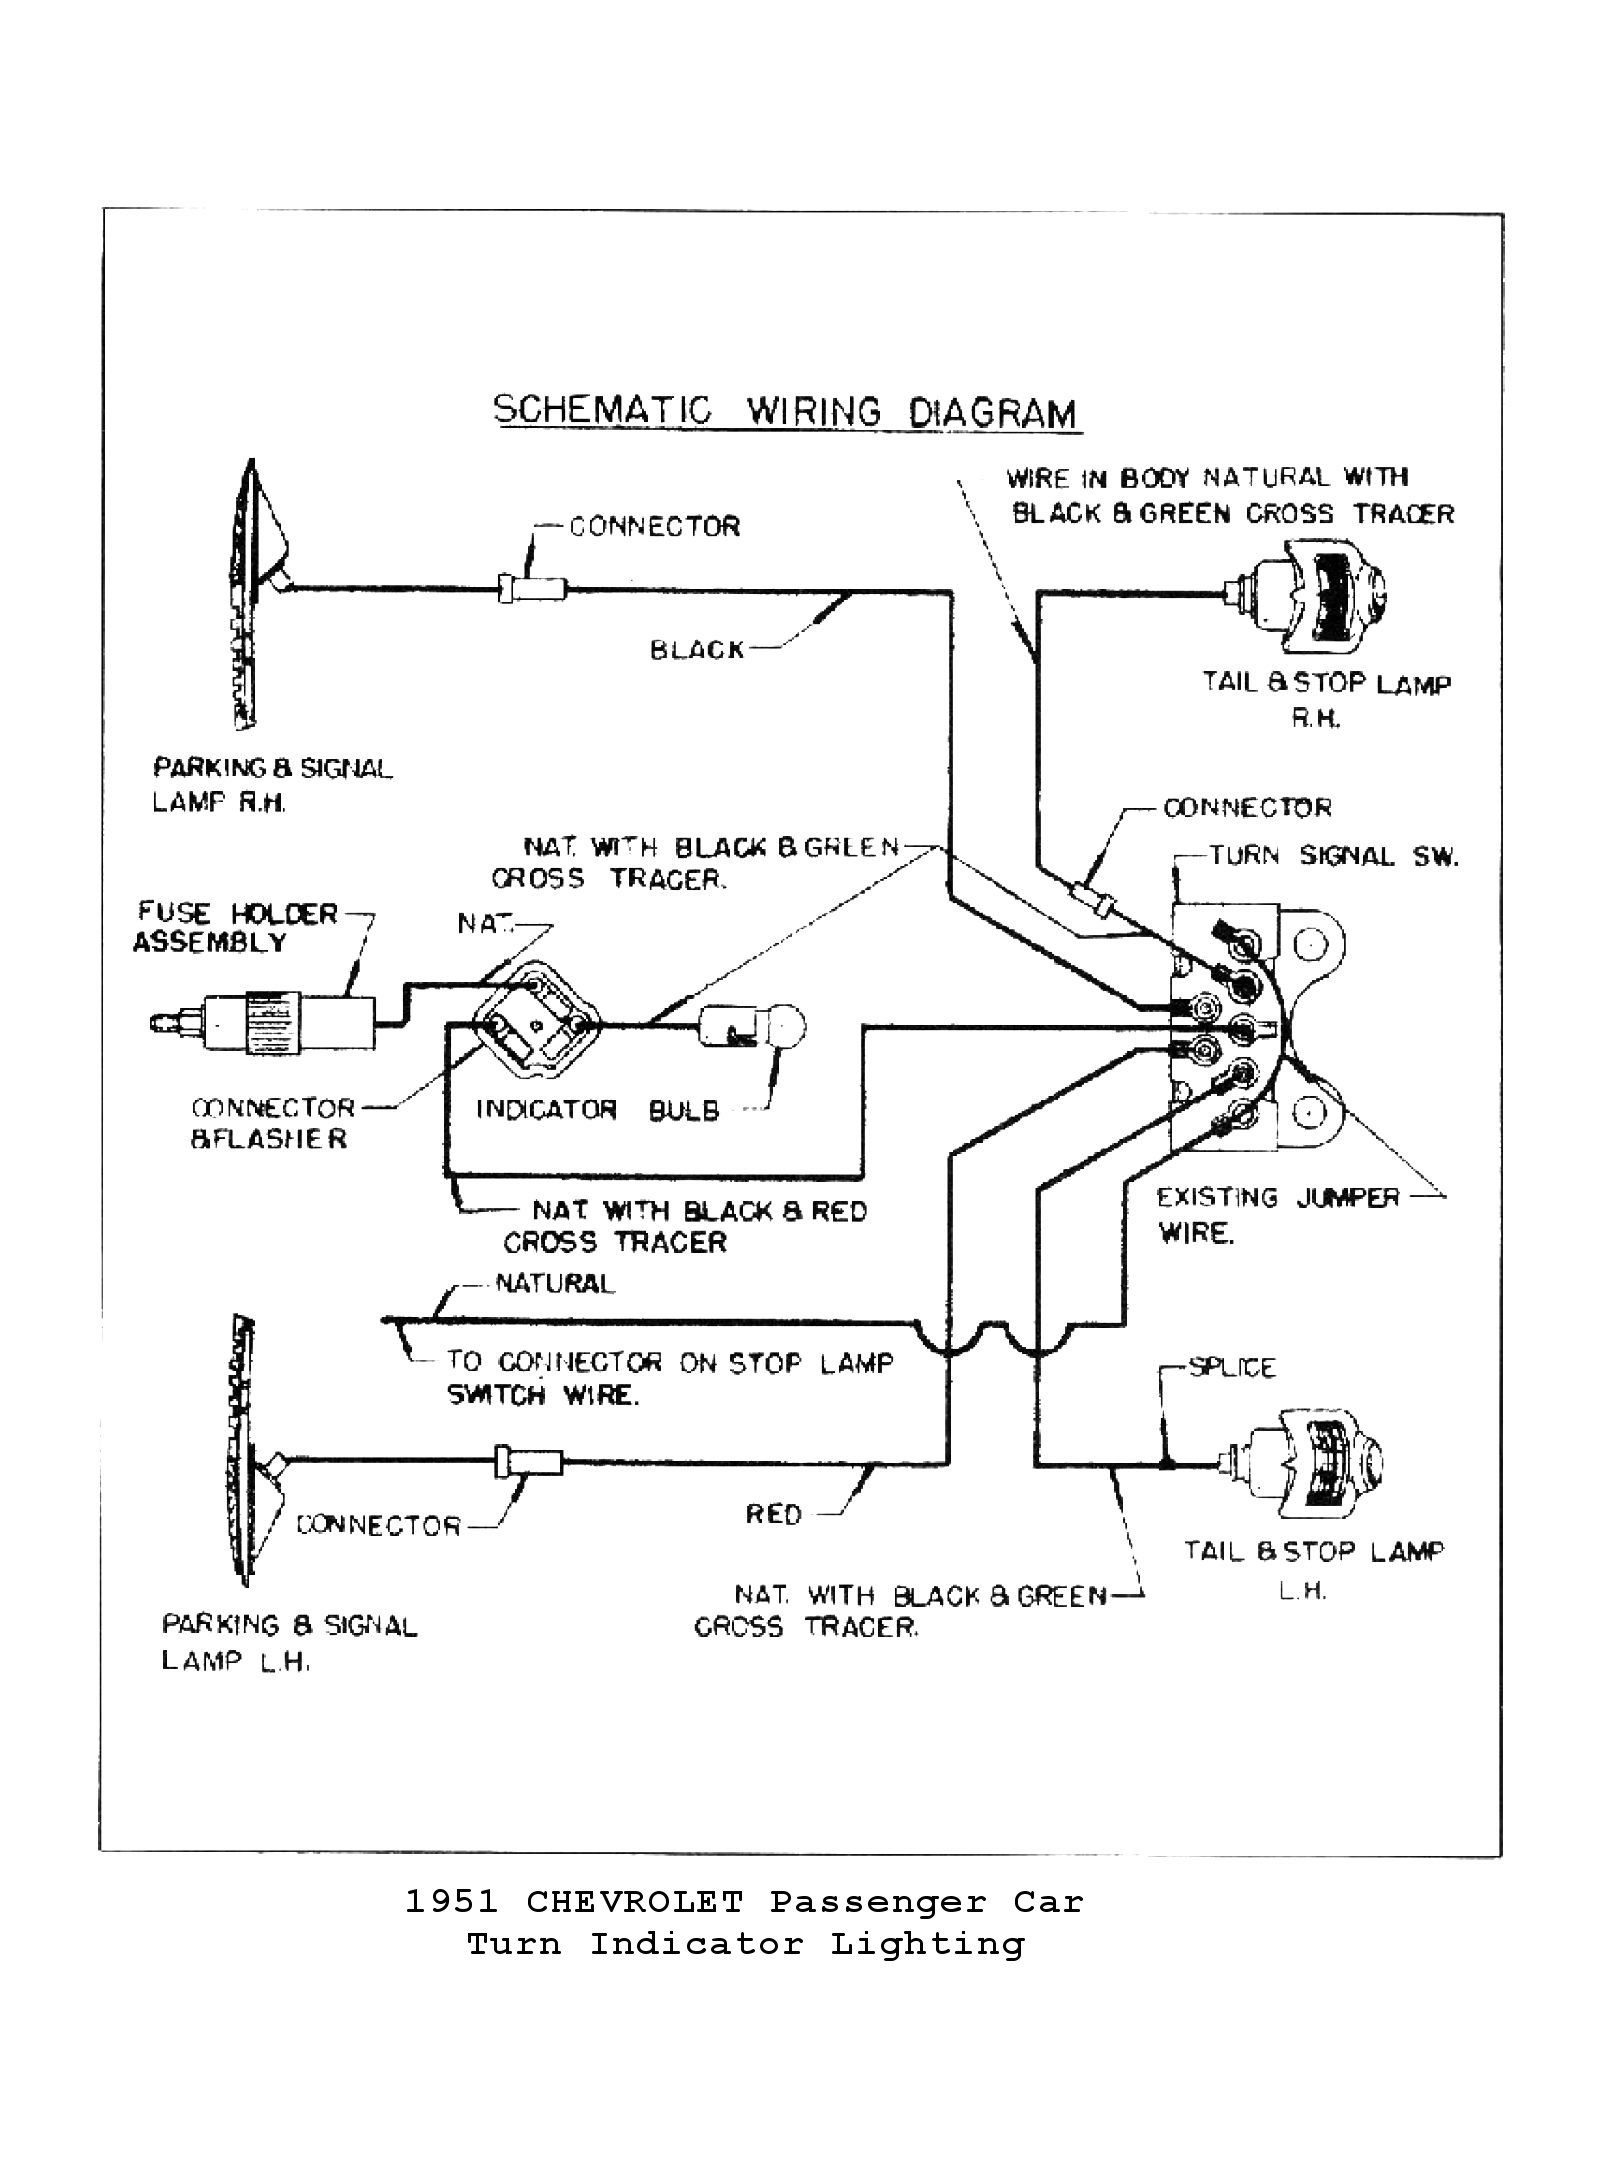 54 Chevy Truck Wiring Diagram Electrical Diagrams Schematics Gmc 1949 1951 Directional Signals